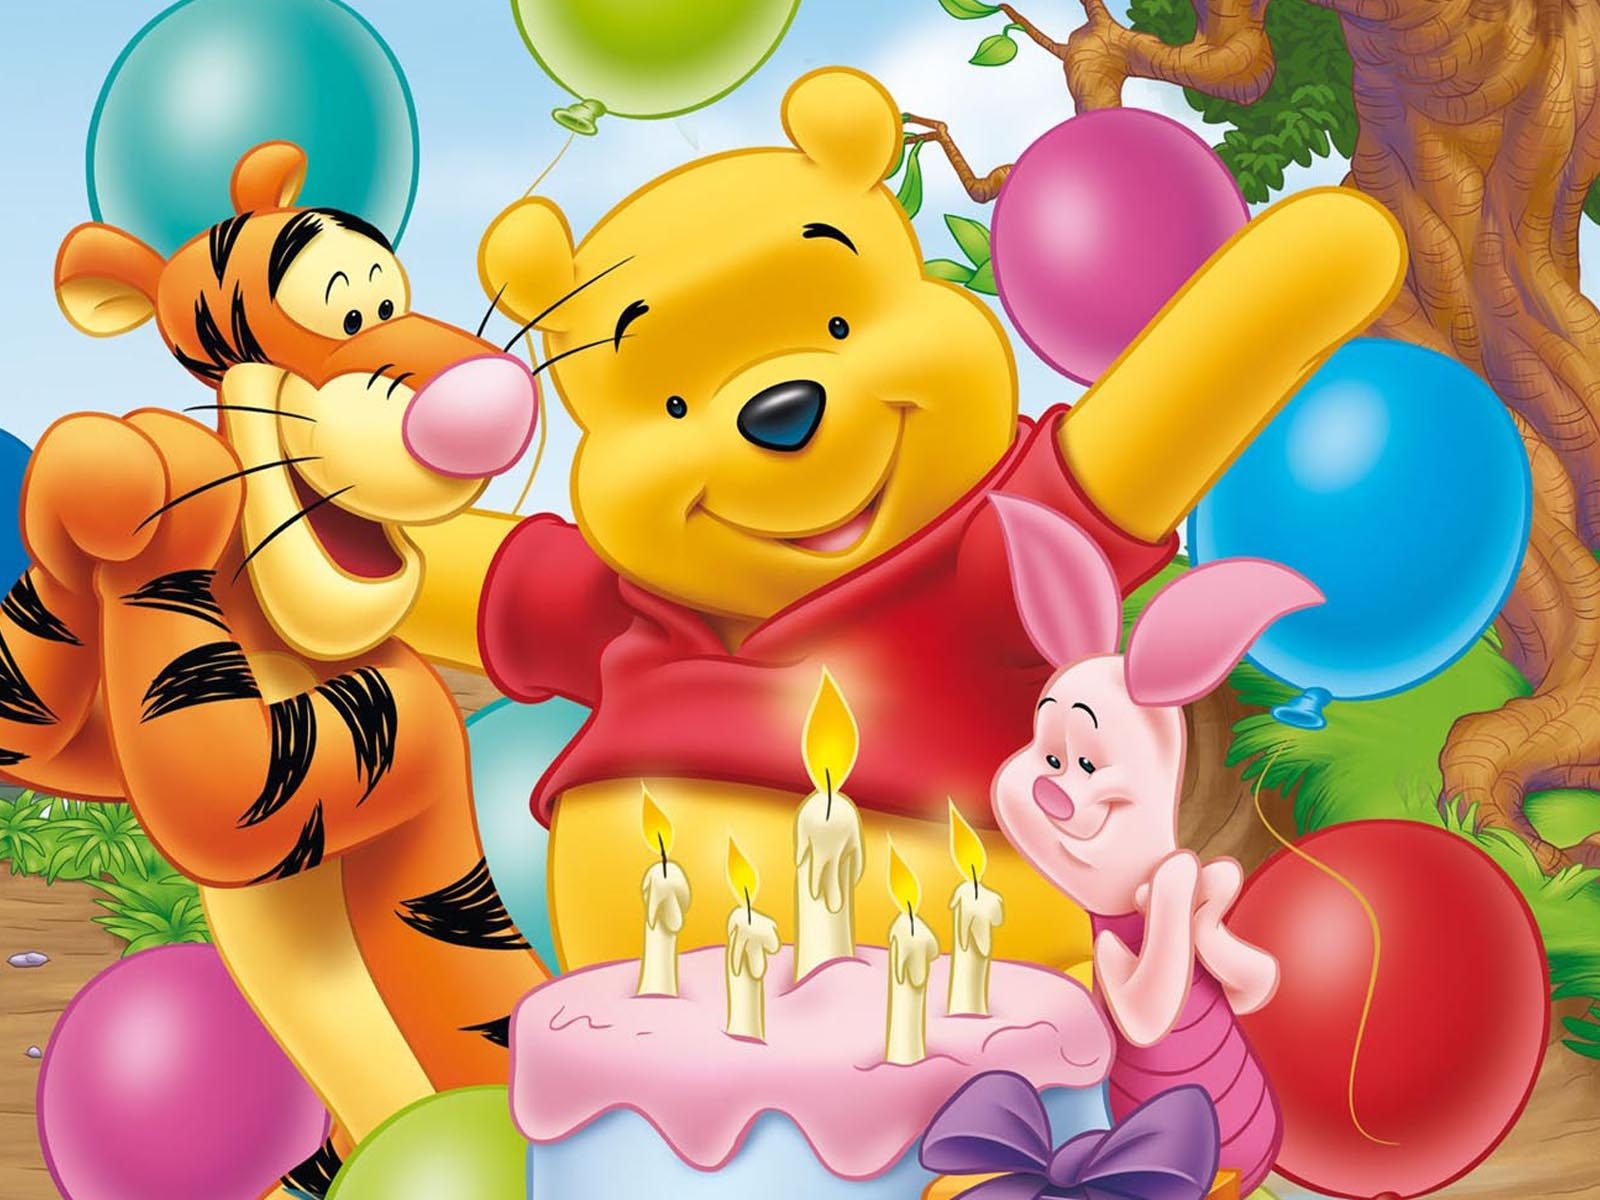 Winnie The Pooh Tigger Piglet Eeyore Celebration Of